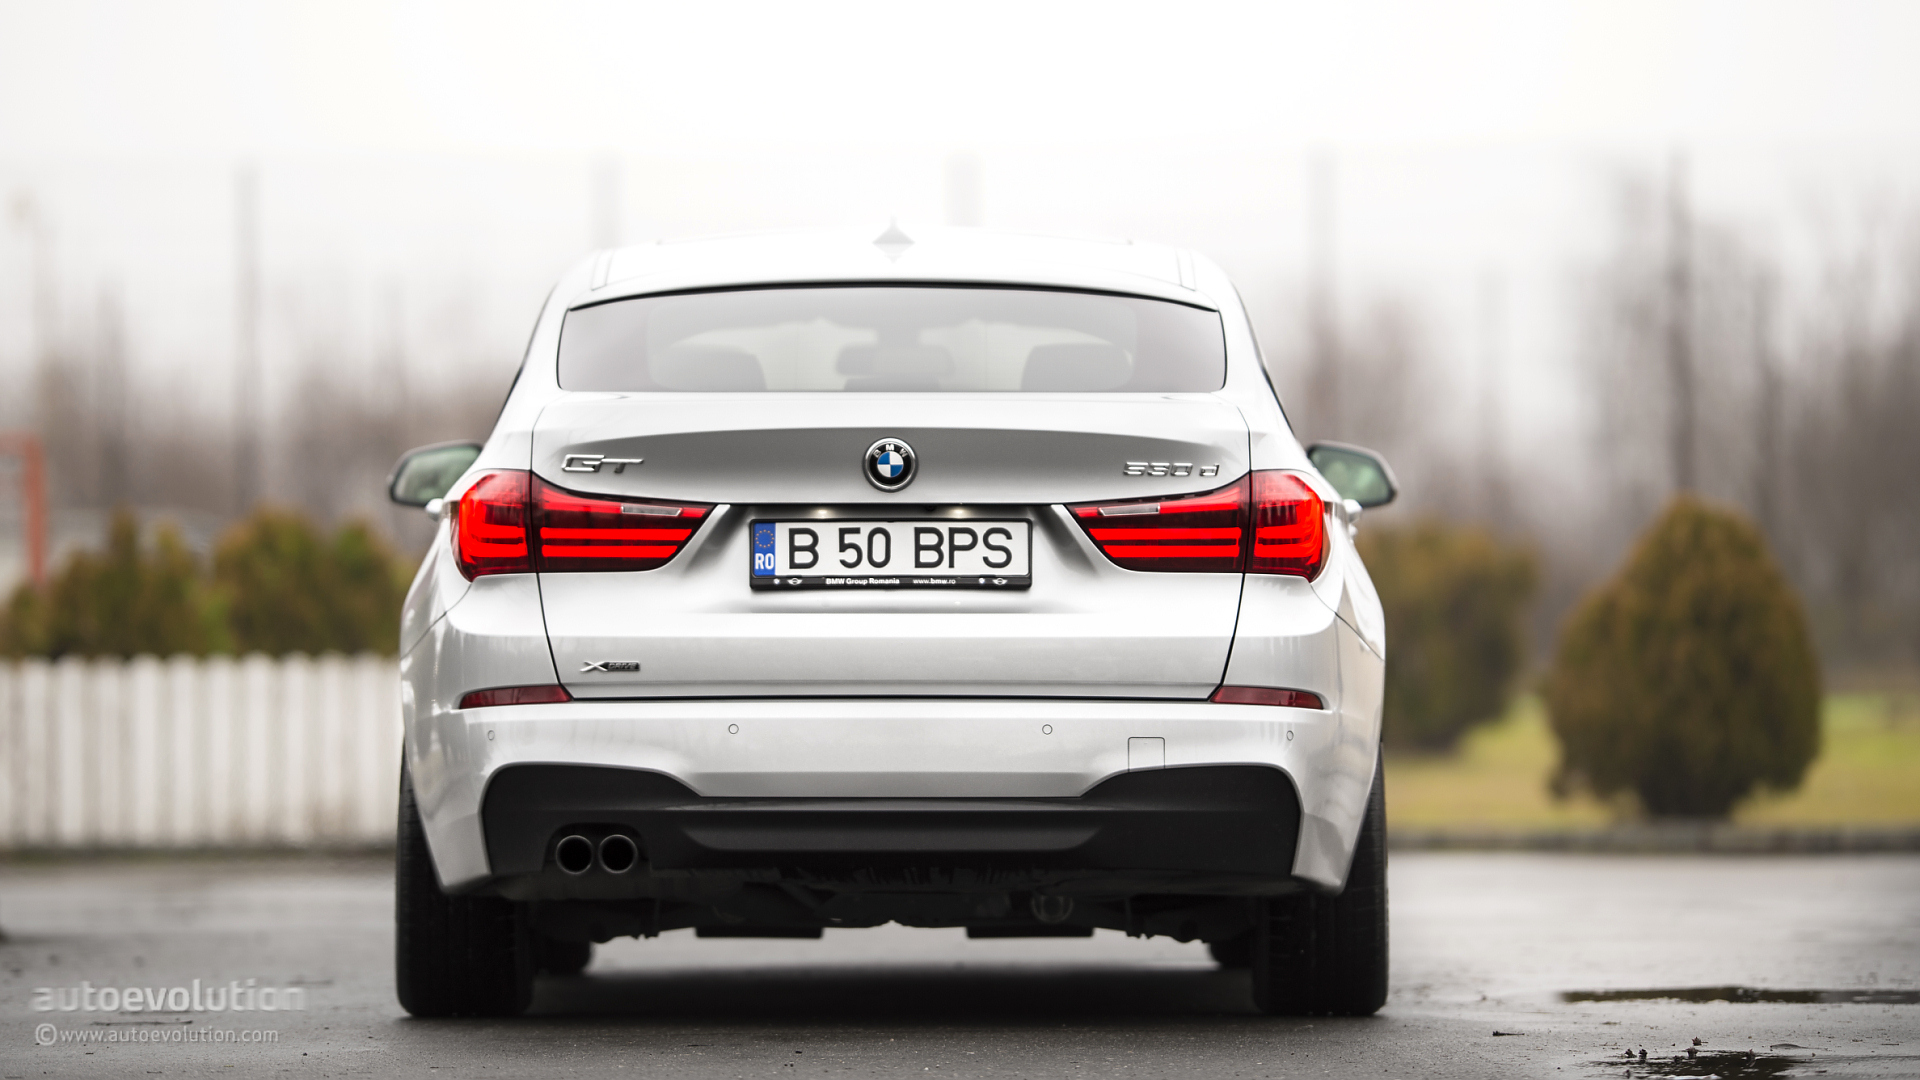 2015 Bmw 5 Series Gran Turismo Hd Wallpapers The Facelift Matters 6 Gt Up